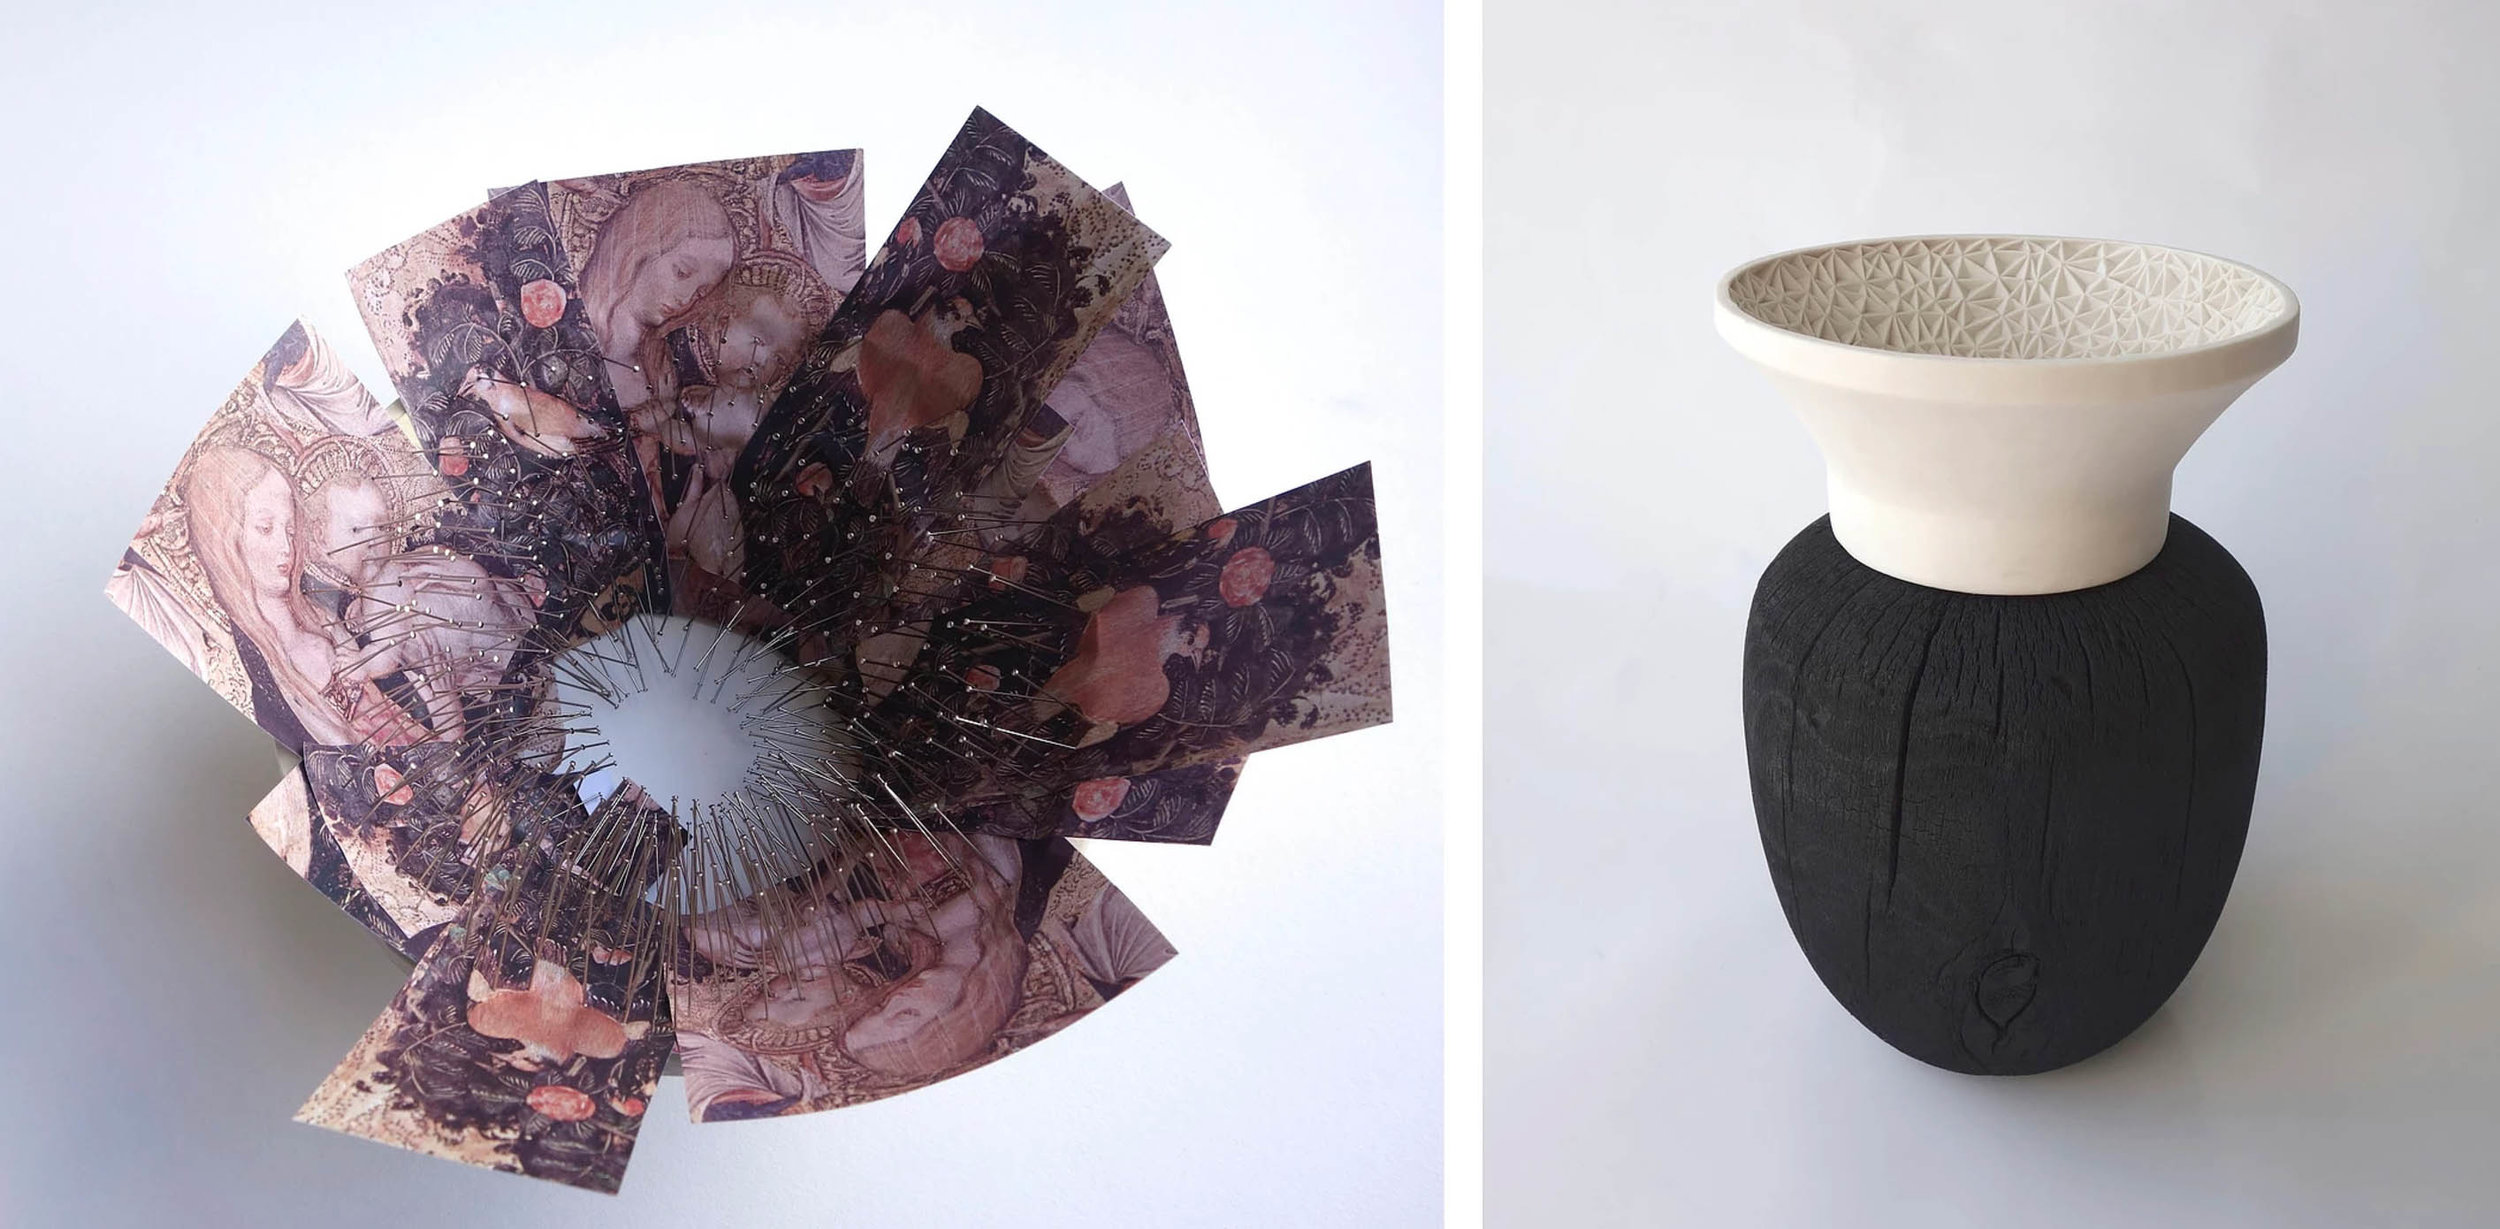 In Leah Jensen's  Renaissance Vessels , we see the pairing of carved porcelain with burnt wood. Seen here is the pattern mapping, and final vessel, based on  Madonna of the Quail.